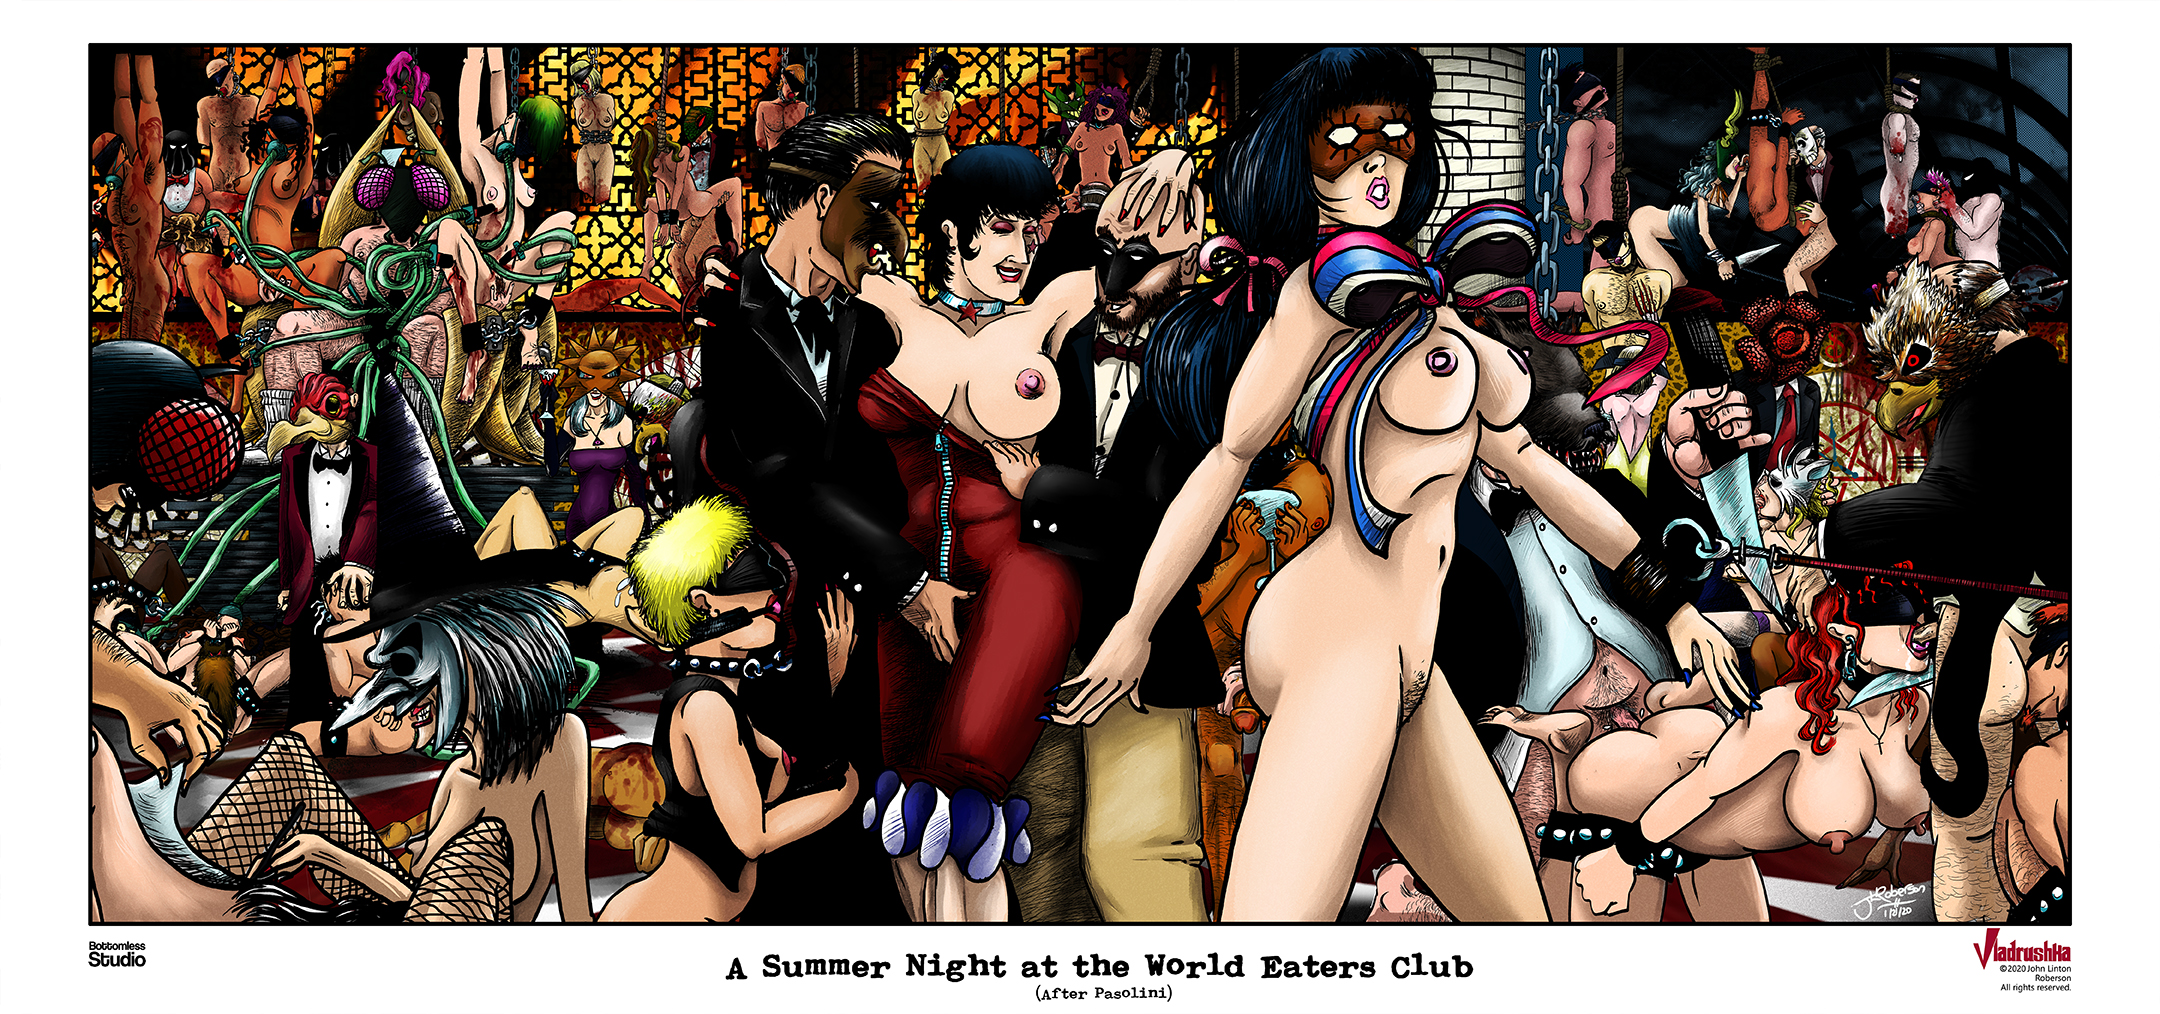 Vladrushka: A Summer Night at the World Eaters Club (c)2019 John Linton Roberson